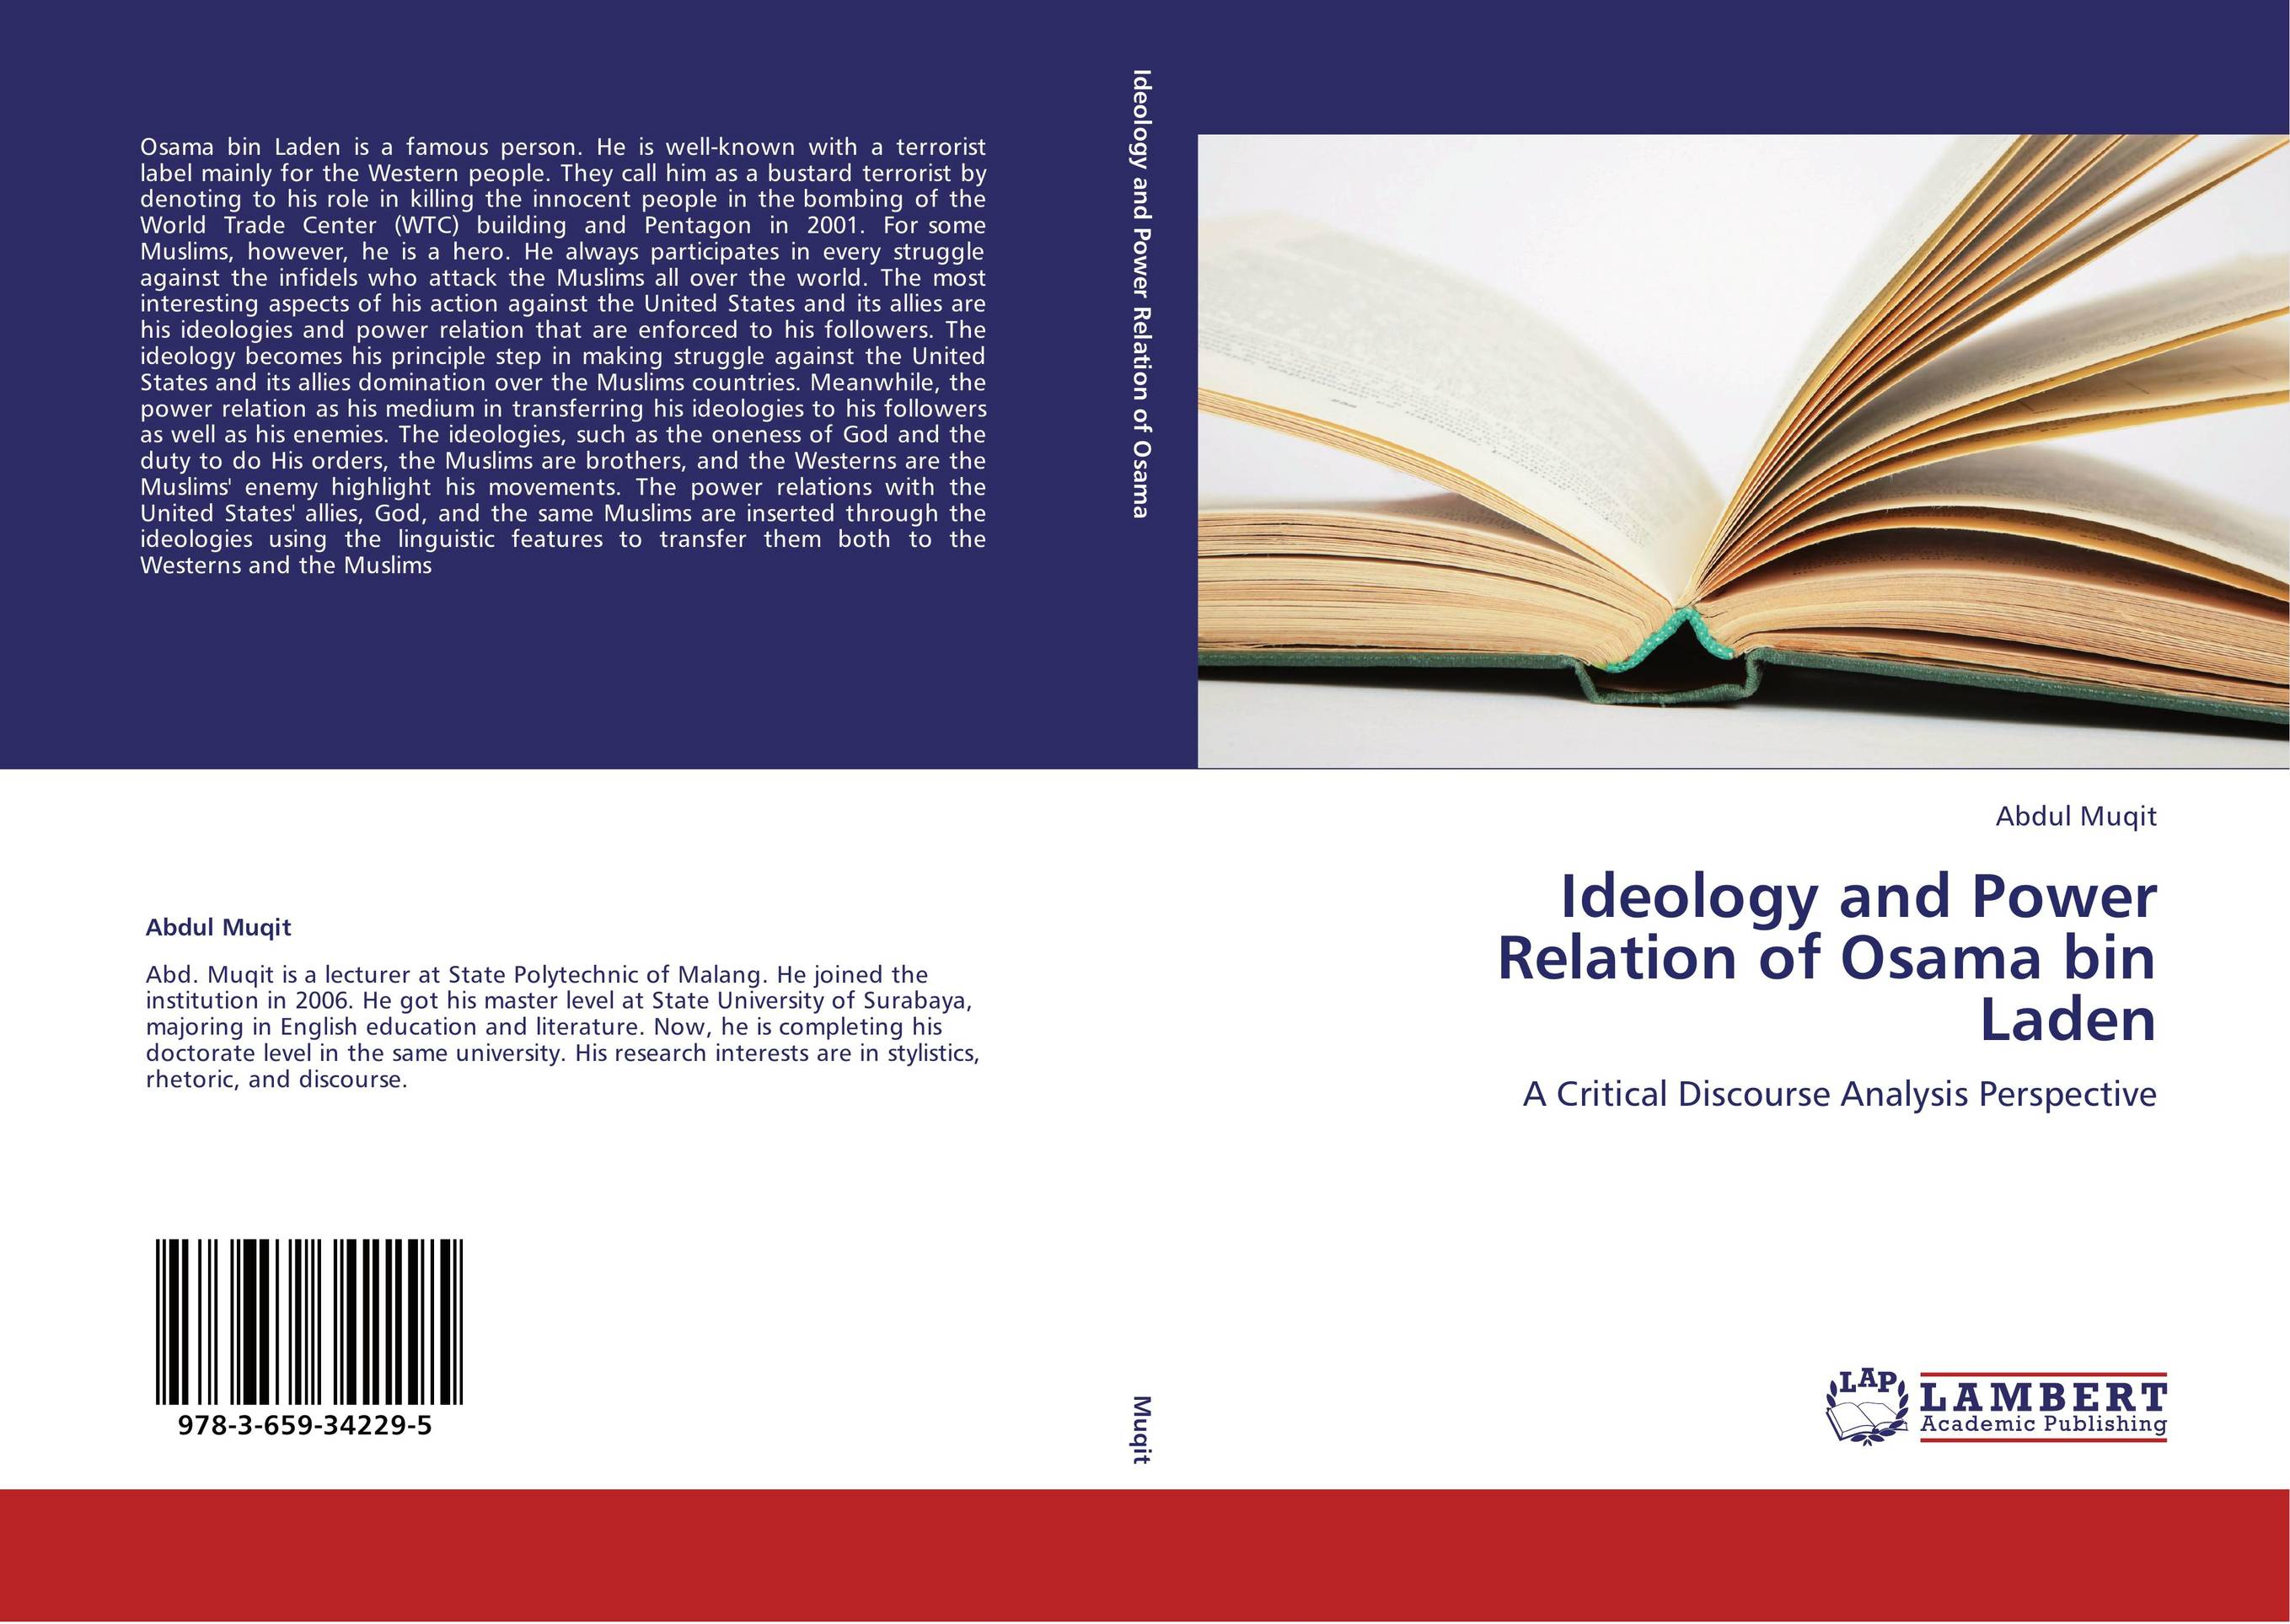 the relationship between news and ideology essay Currently, relationship between marketing and pr and their similarities are growing the main task of pr specialists is to provide interesting and favorable news about the company and its services building relationships between the company and community - that is the mission of public relations.